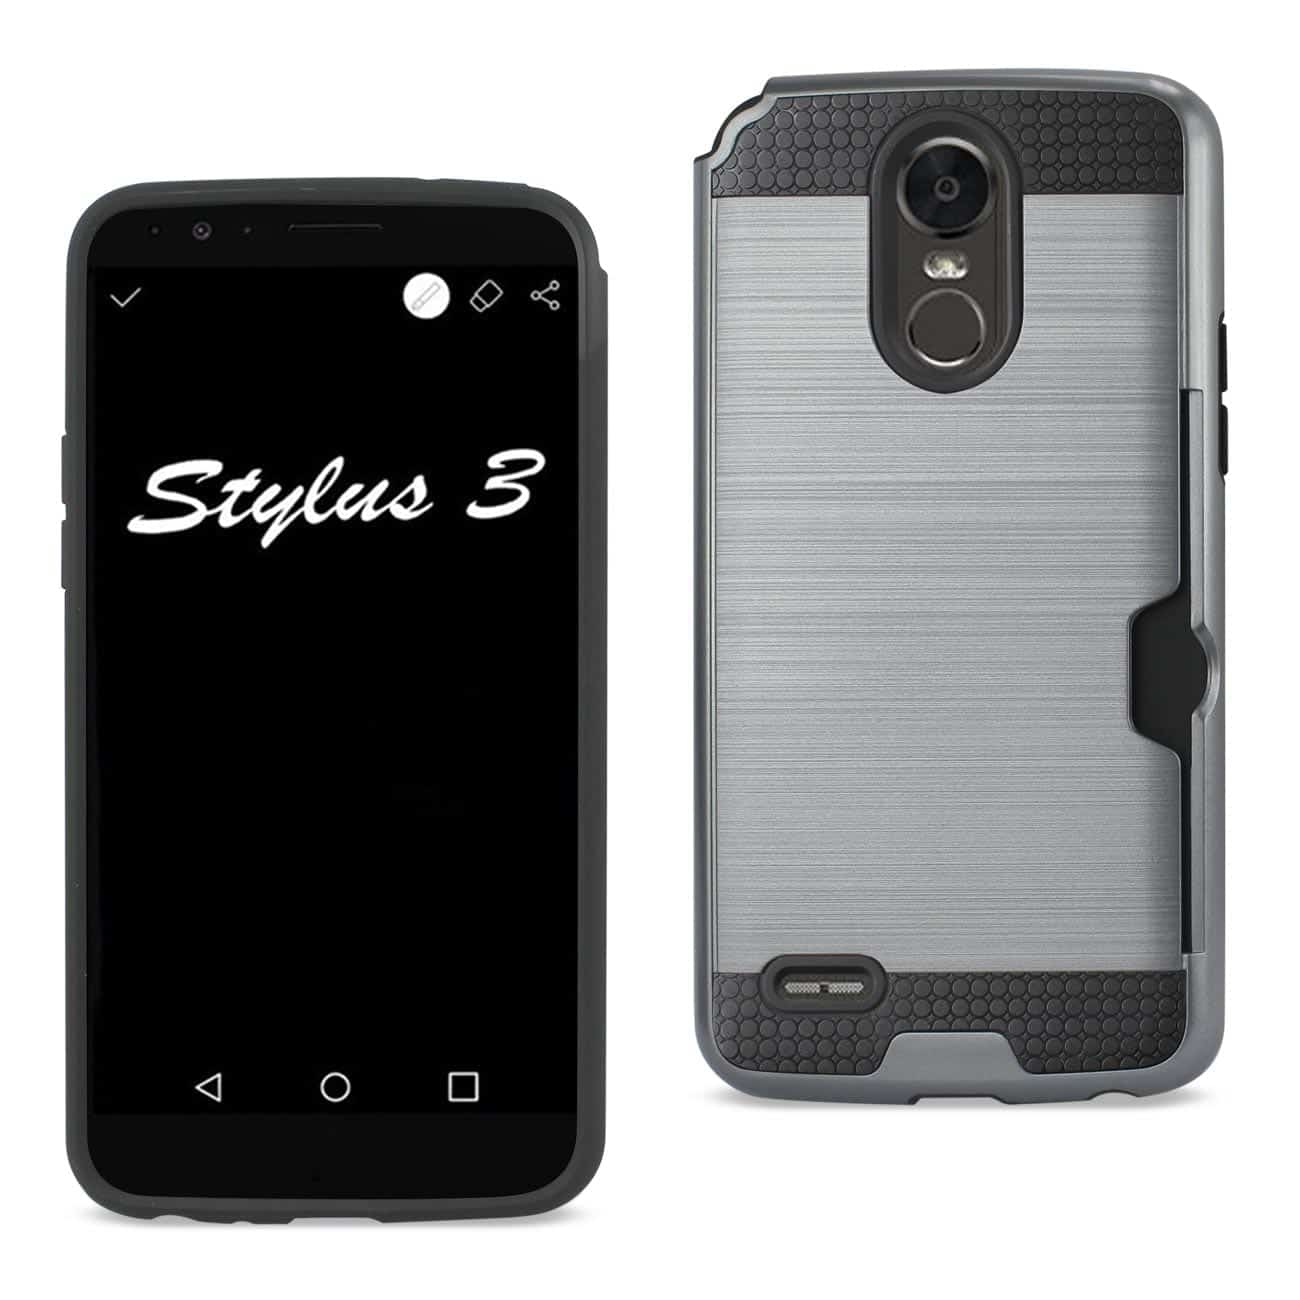 LG STYLO 3/ STYLUS 3 SLIM ARMOR HYBRID CASE WITH CARD HOLDER IN GRAY